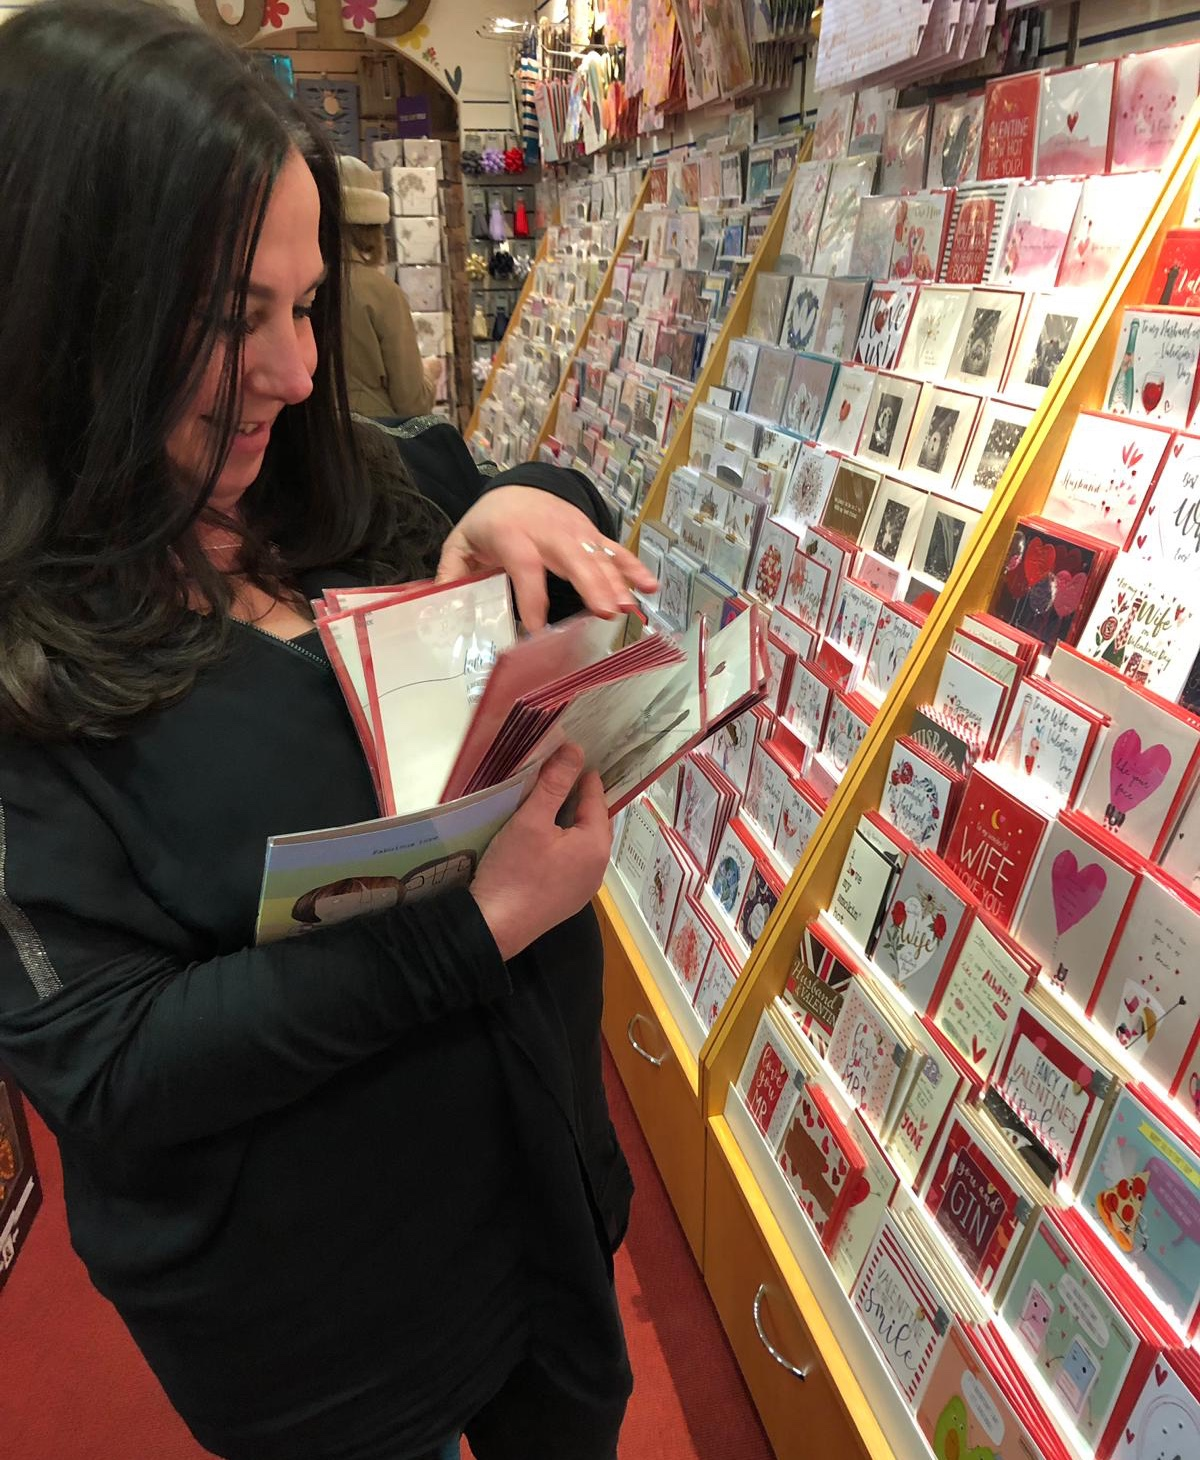 Above: Box of Delights' Michelle Ellingham titivating the store's Valentine's Day display.